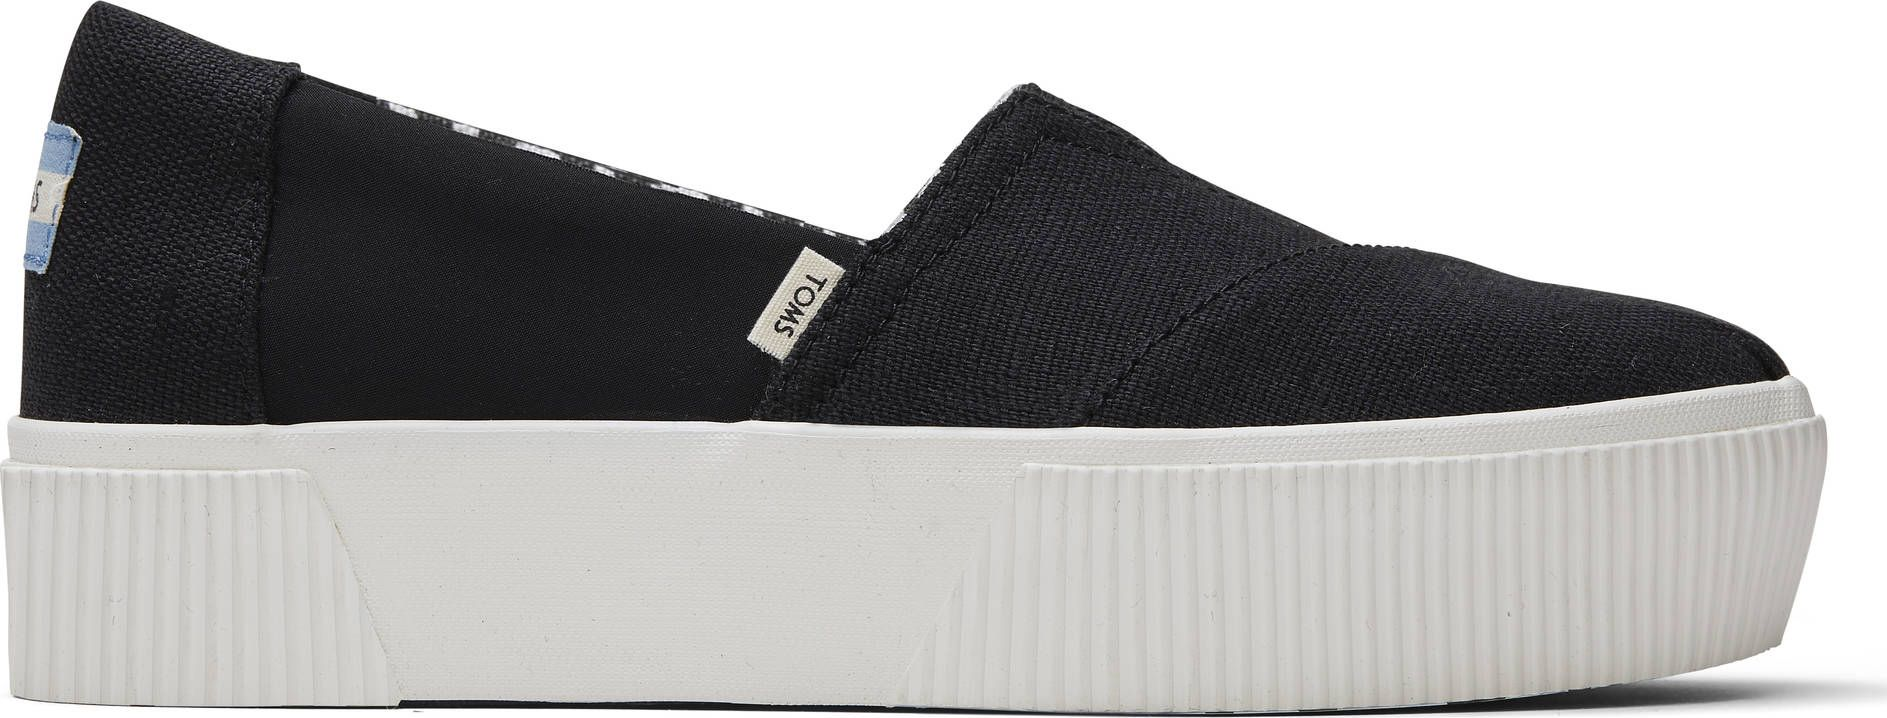 TOMS Heritage Canvas Women's Alpargata Boardwalk Black 38